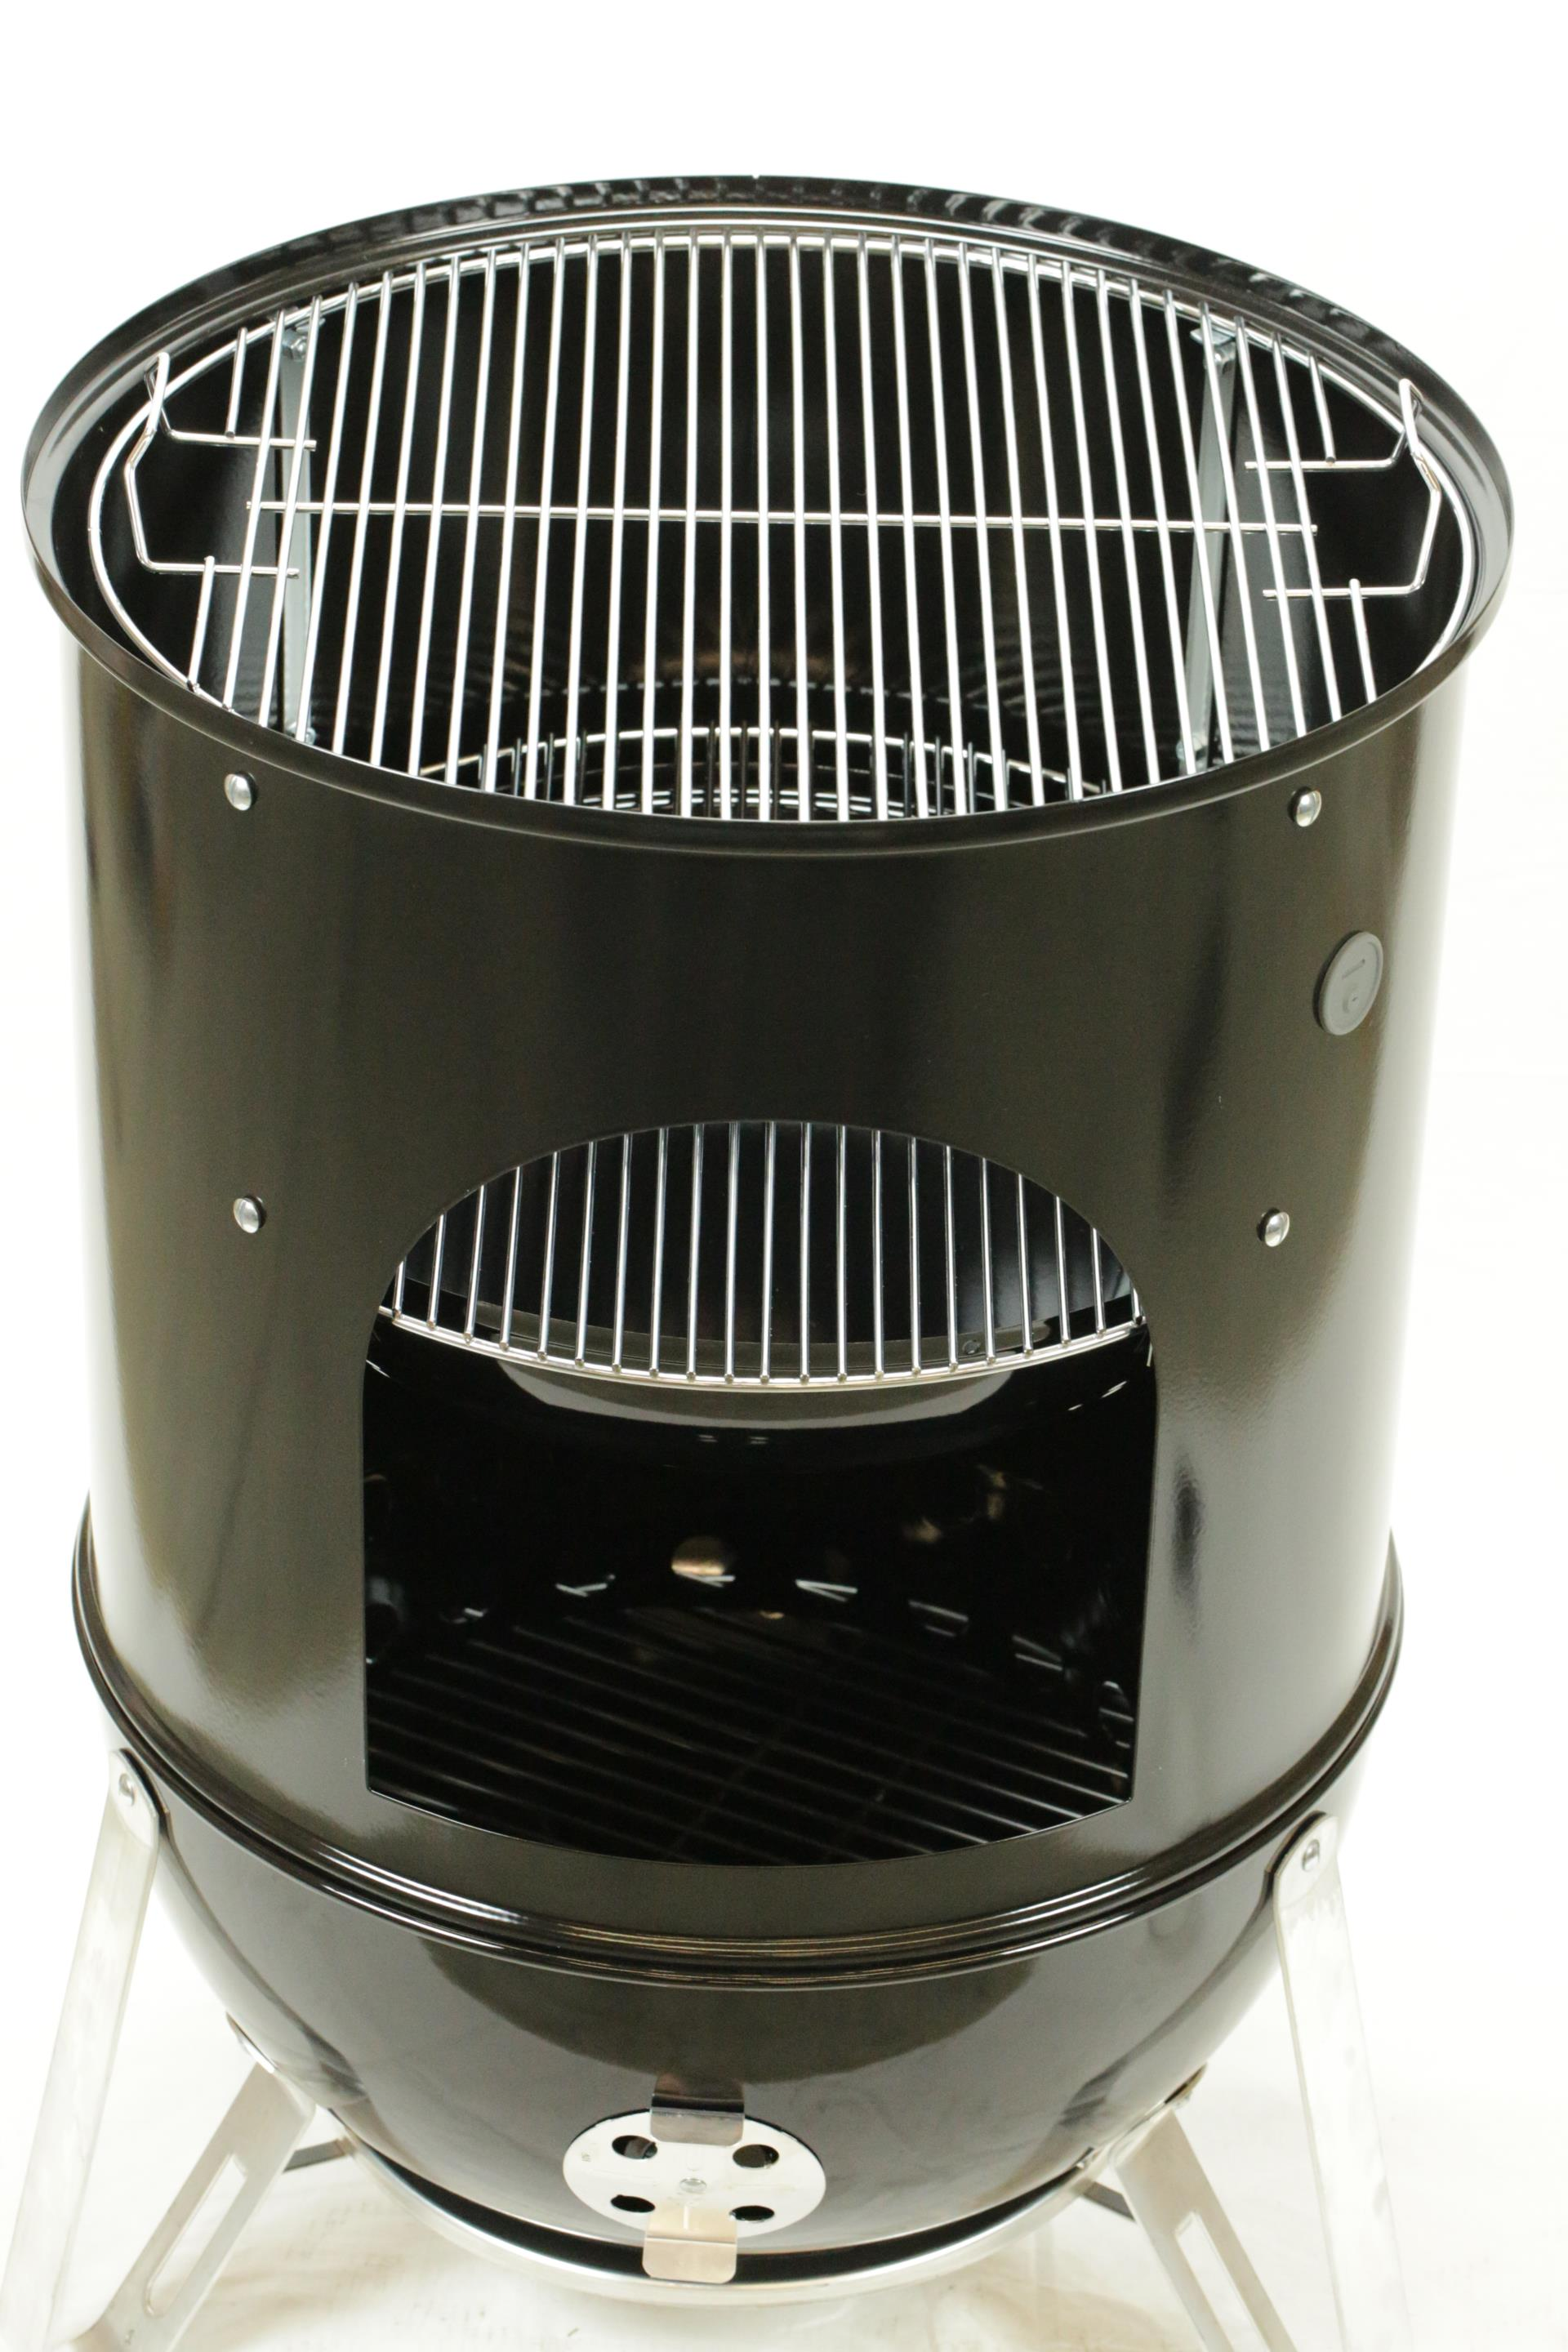 weber smokey mountain cooker 57 cm black raima grill. Black Bedroom Furniture Sets. Home Design Ideas